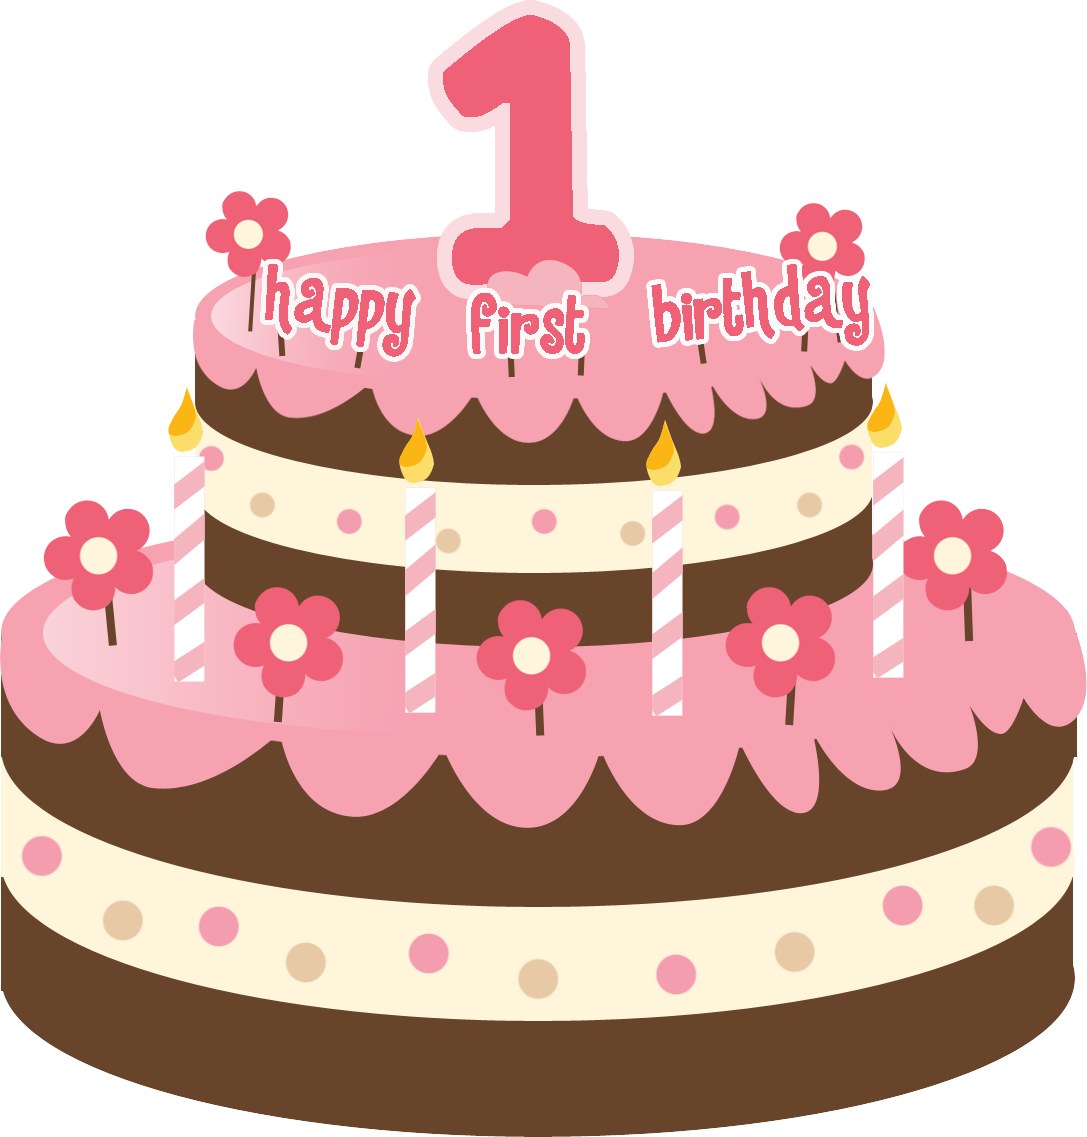 1st birthday cakes clipart transparent Birthday cake one year clipart - ClipartFest transparent